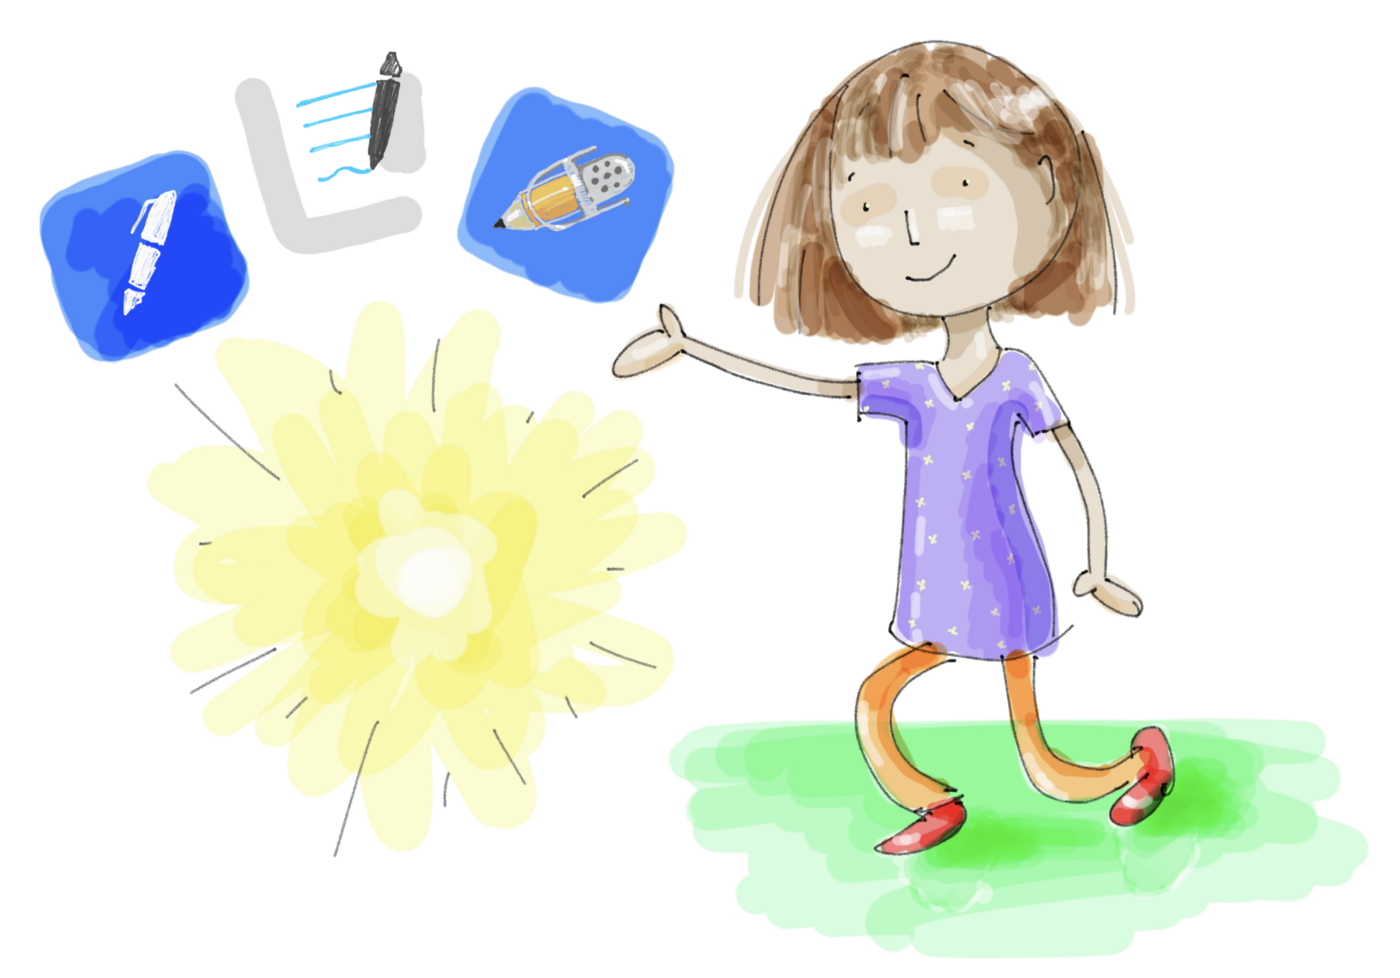 Cartoon girl with icons of Noteshelf, Goodnotes and Notability